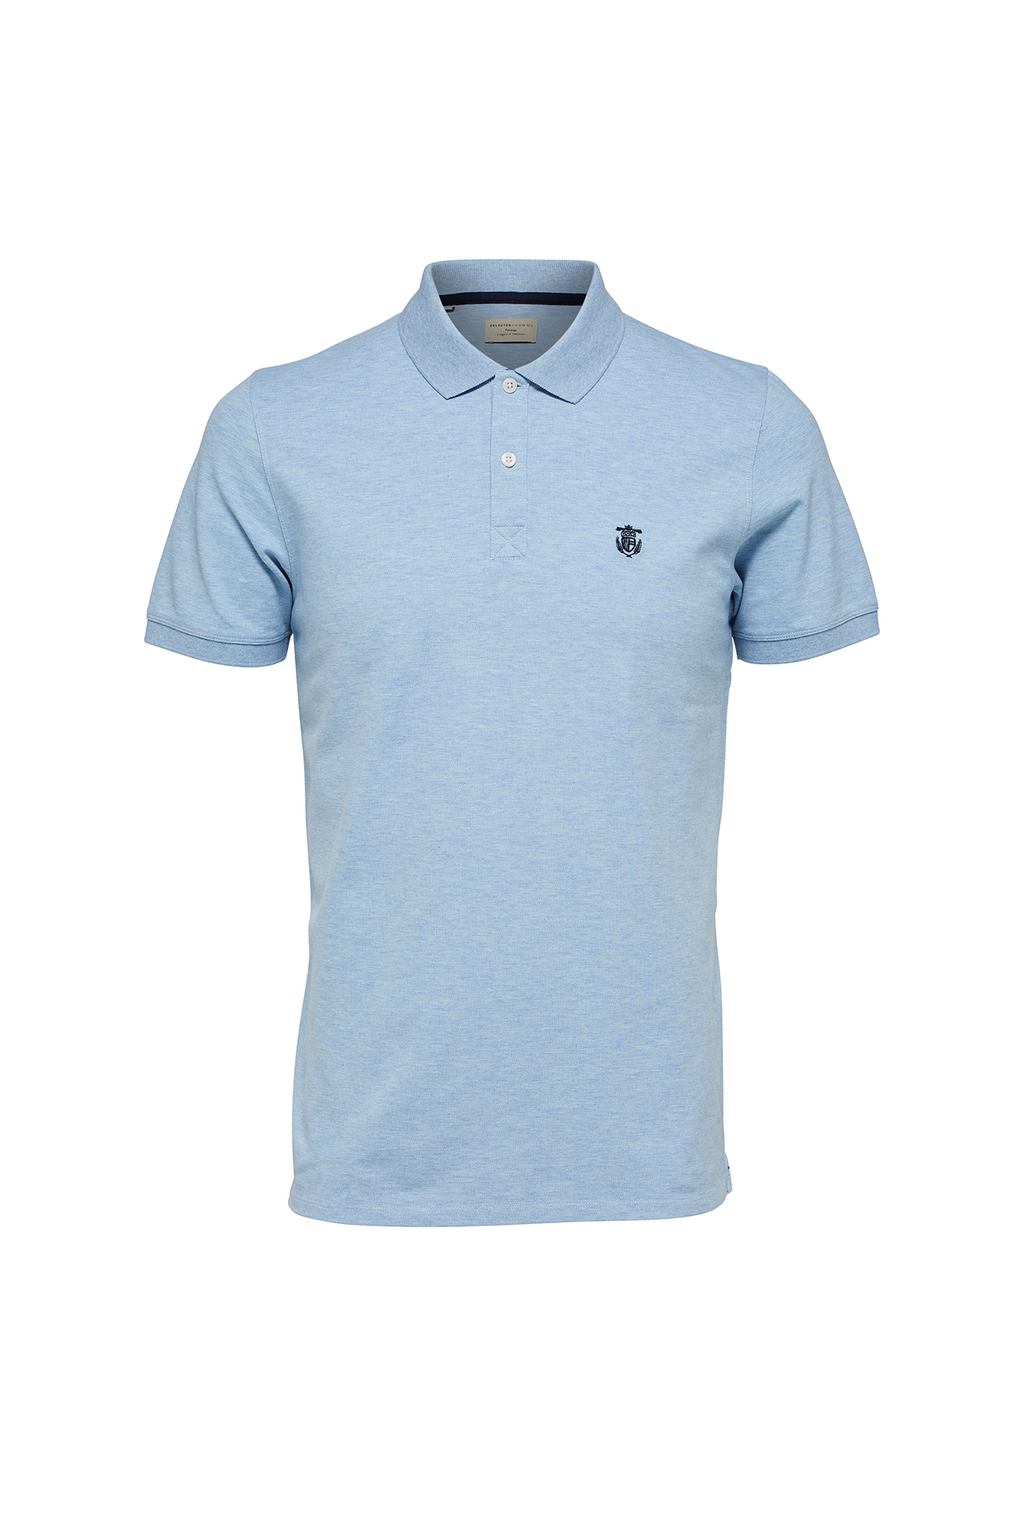 Haro Embroidery Polo - Skyblue - Audace Copenhagen